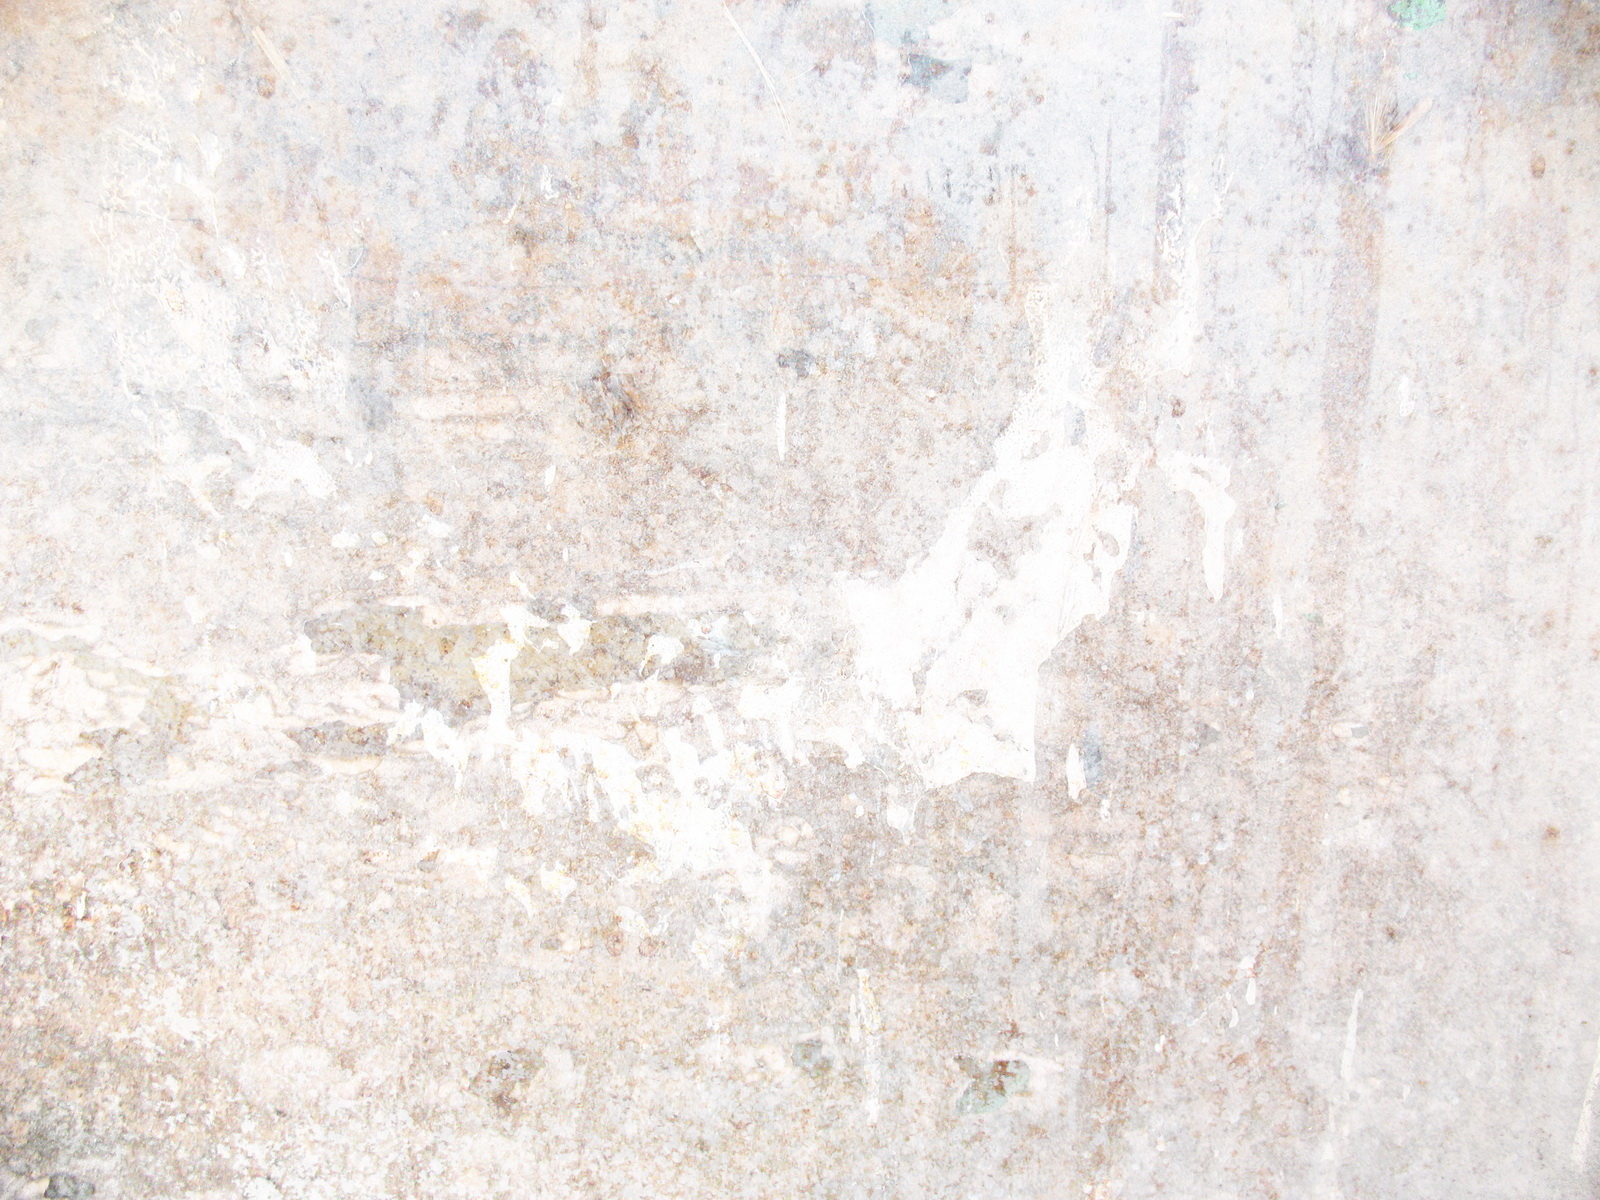 white stucco, texture, download photo, background, white stucco background  texture